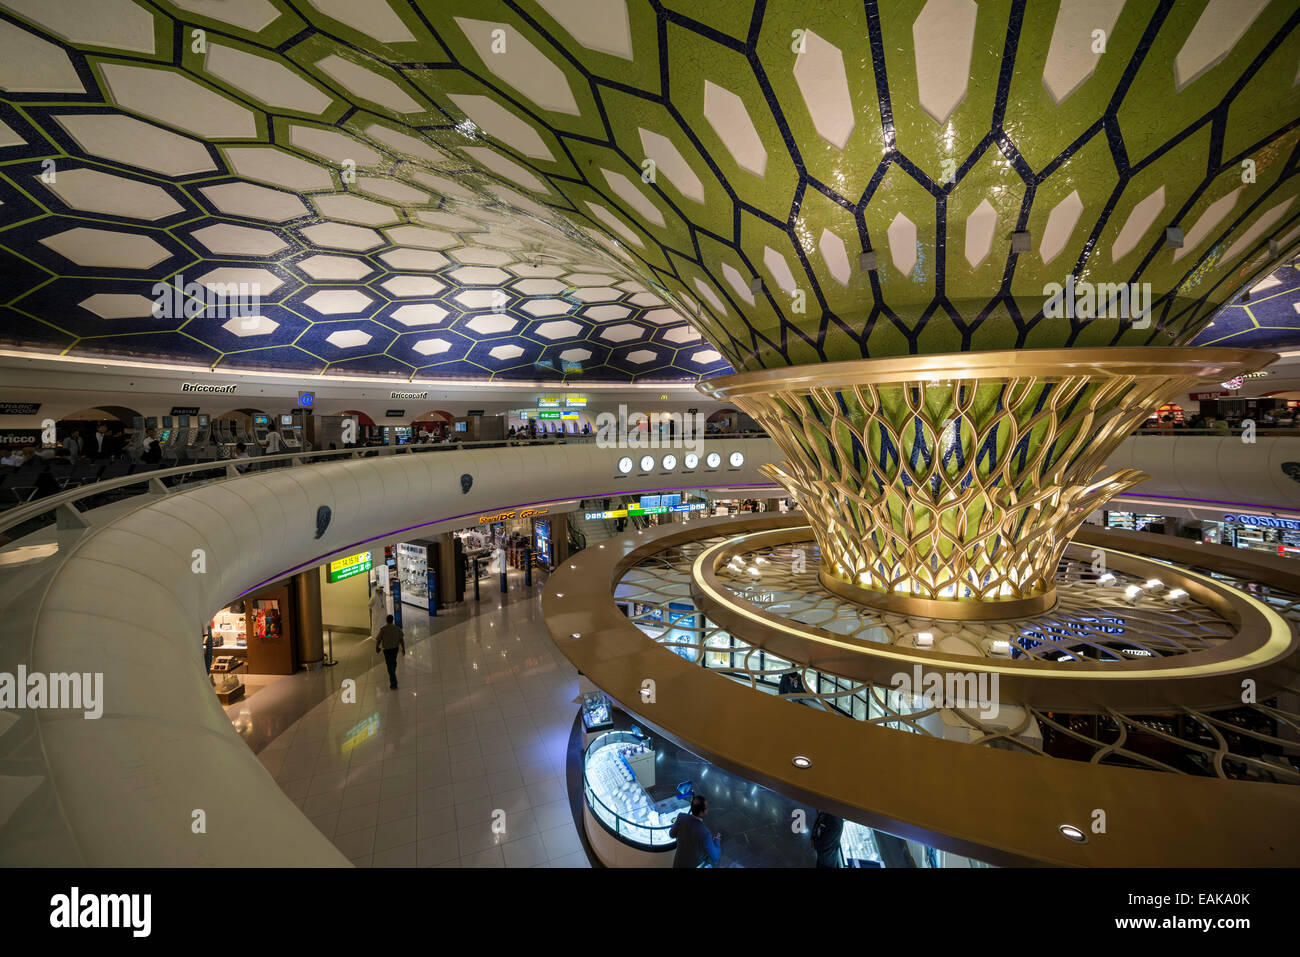 Inside the old abu dhabi international airport abu dhabi for International decor company abu dhabi